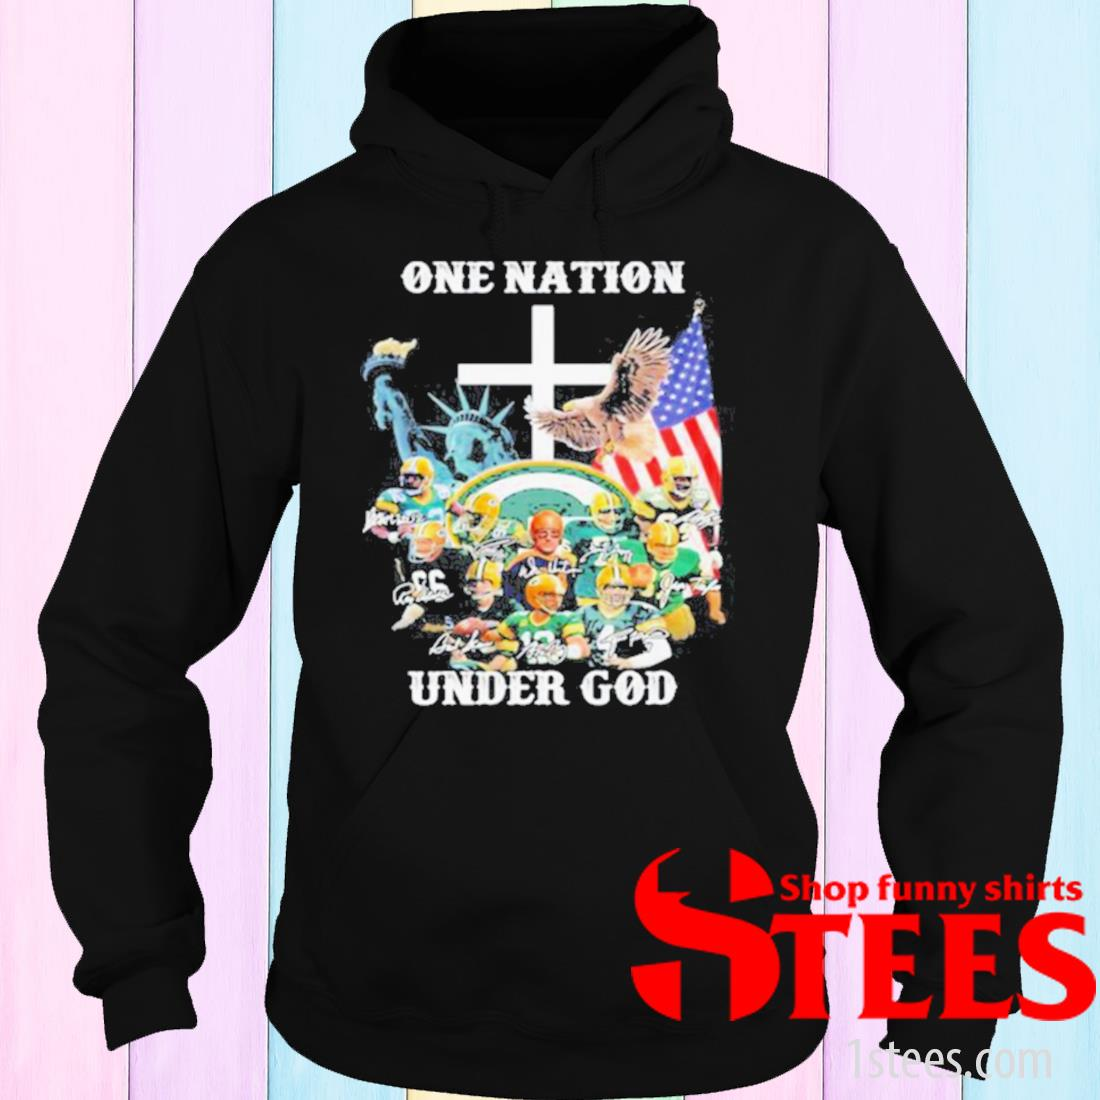 One Nation Under God Green Bay Packers Signature Shirt hoodie